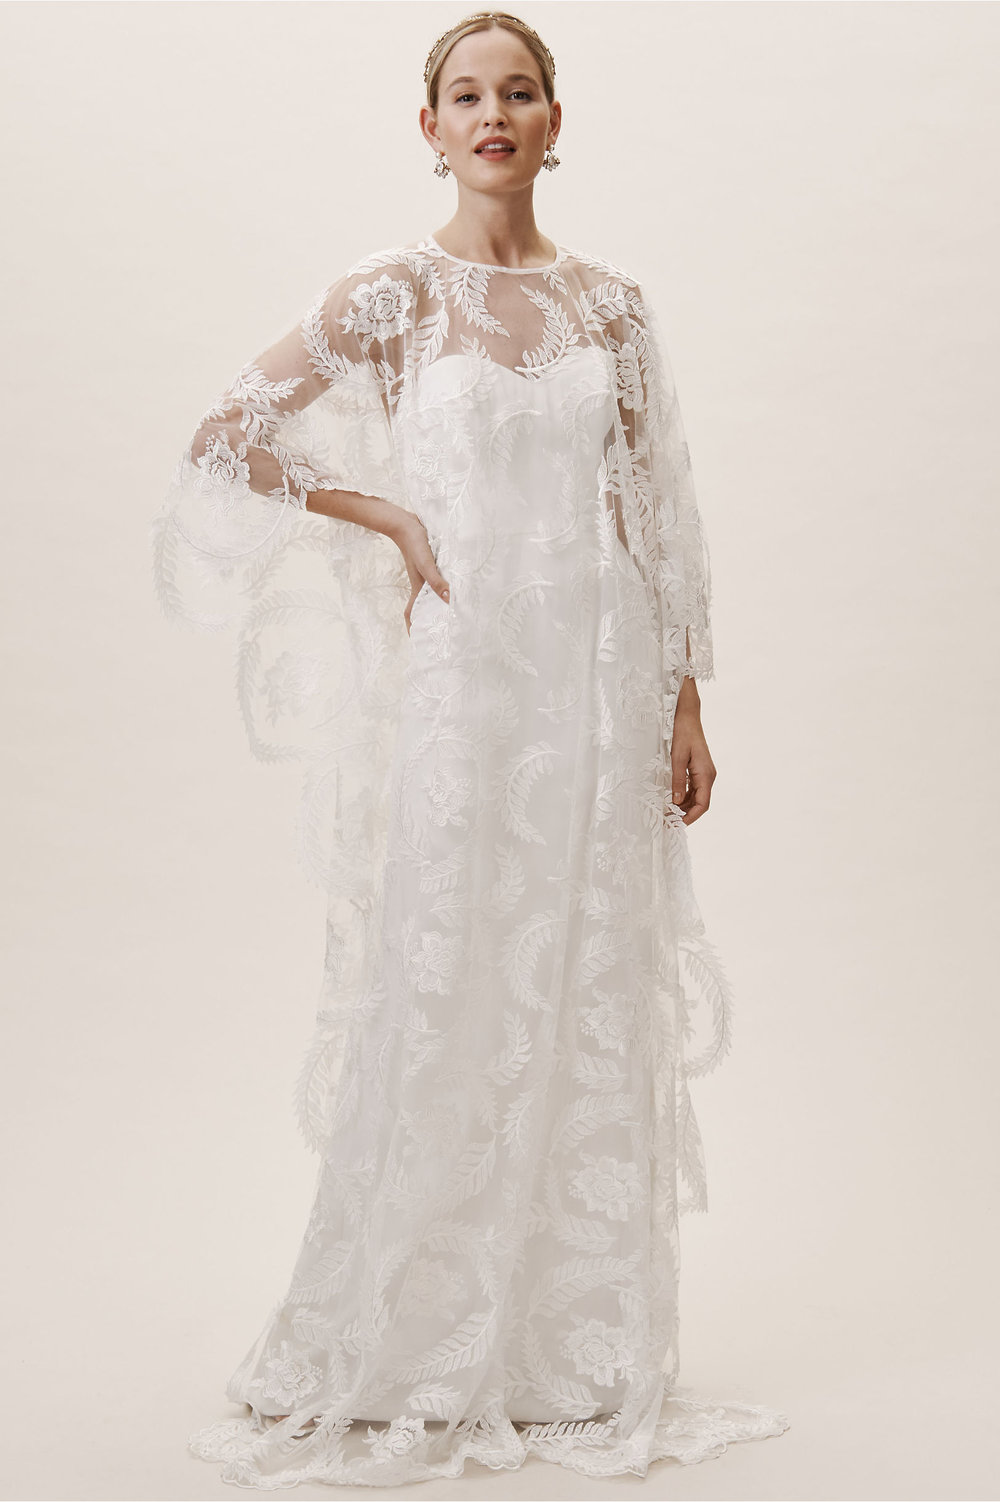 feather lace flowing cape from BHLDN 2019 wedding collection